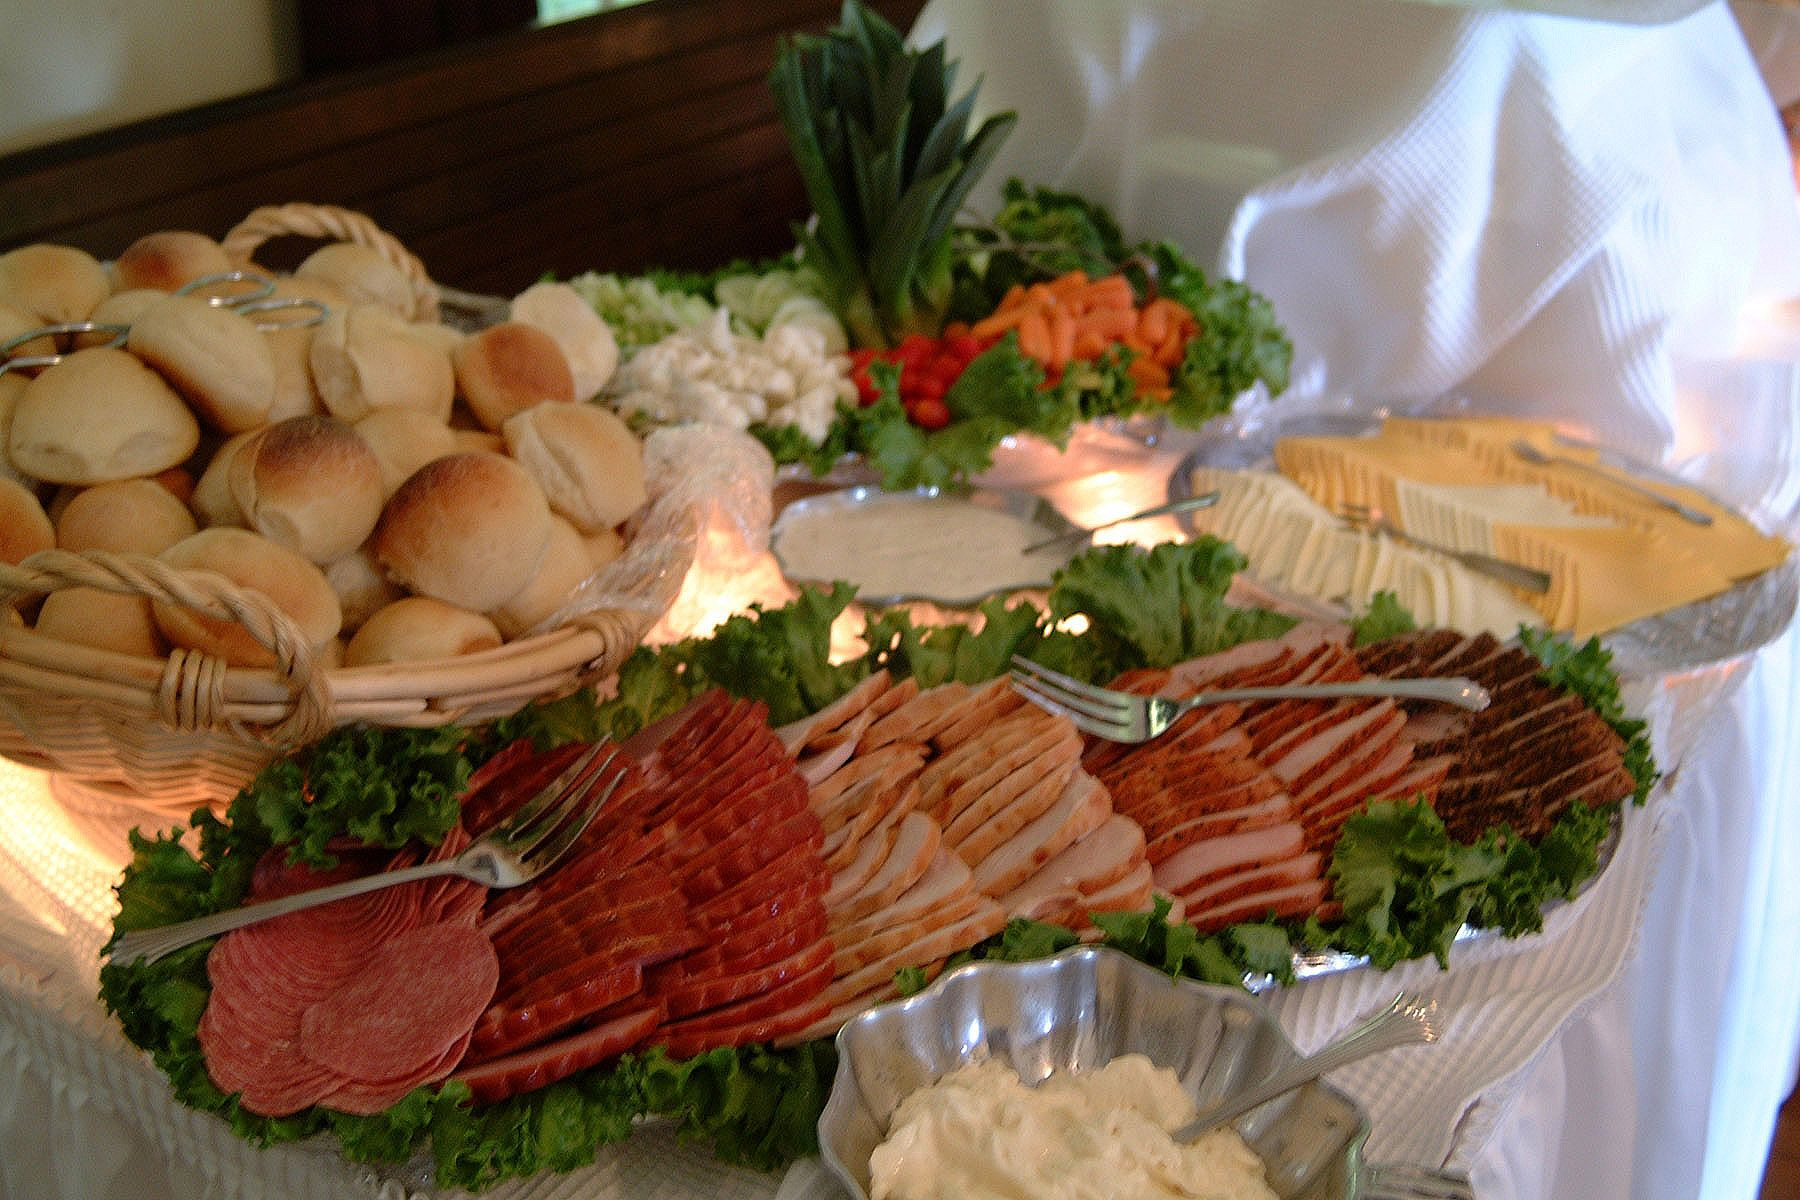 Beautifully Catered Wedding Reception Food Table At Green River